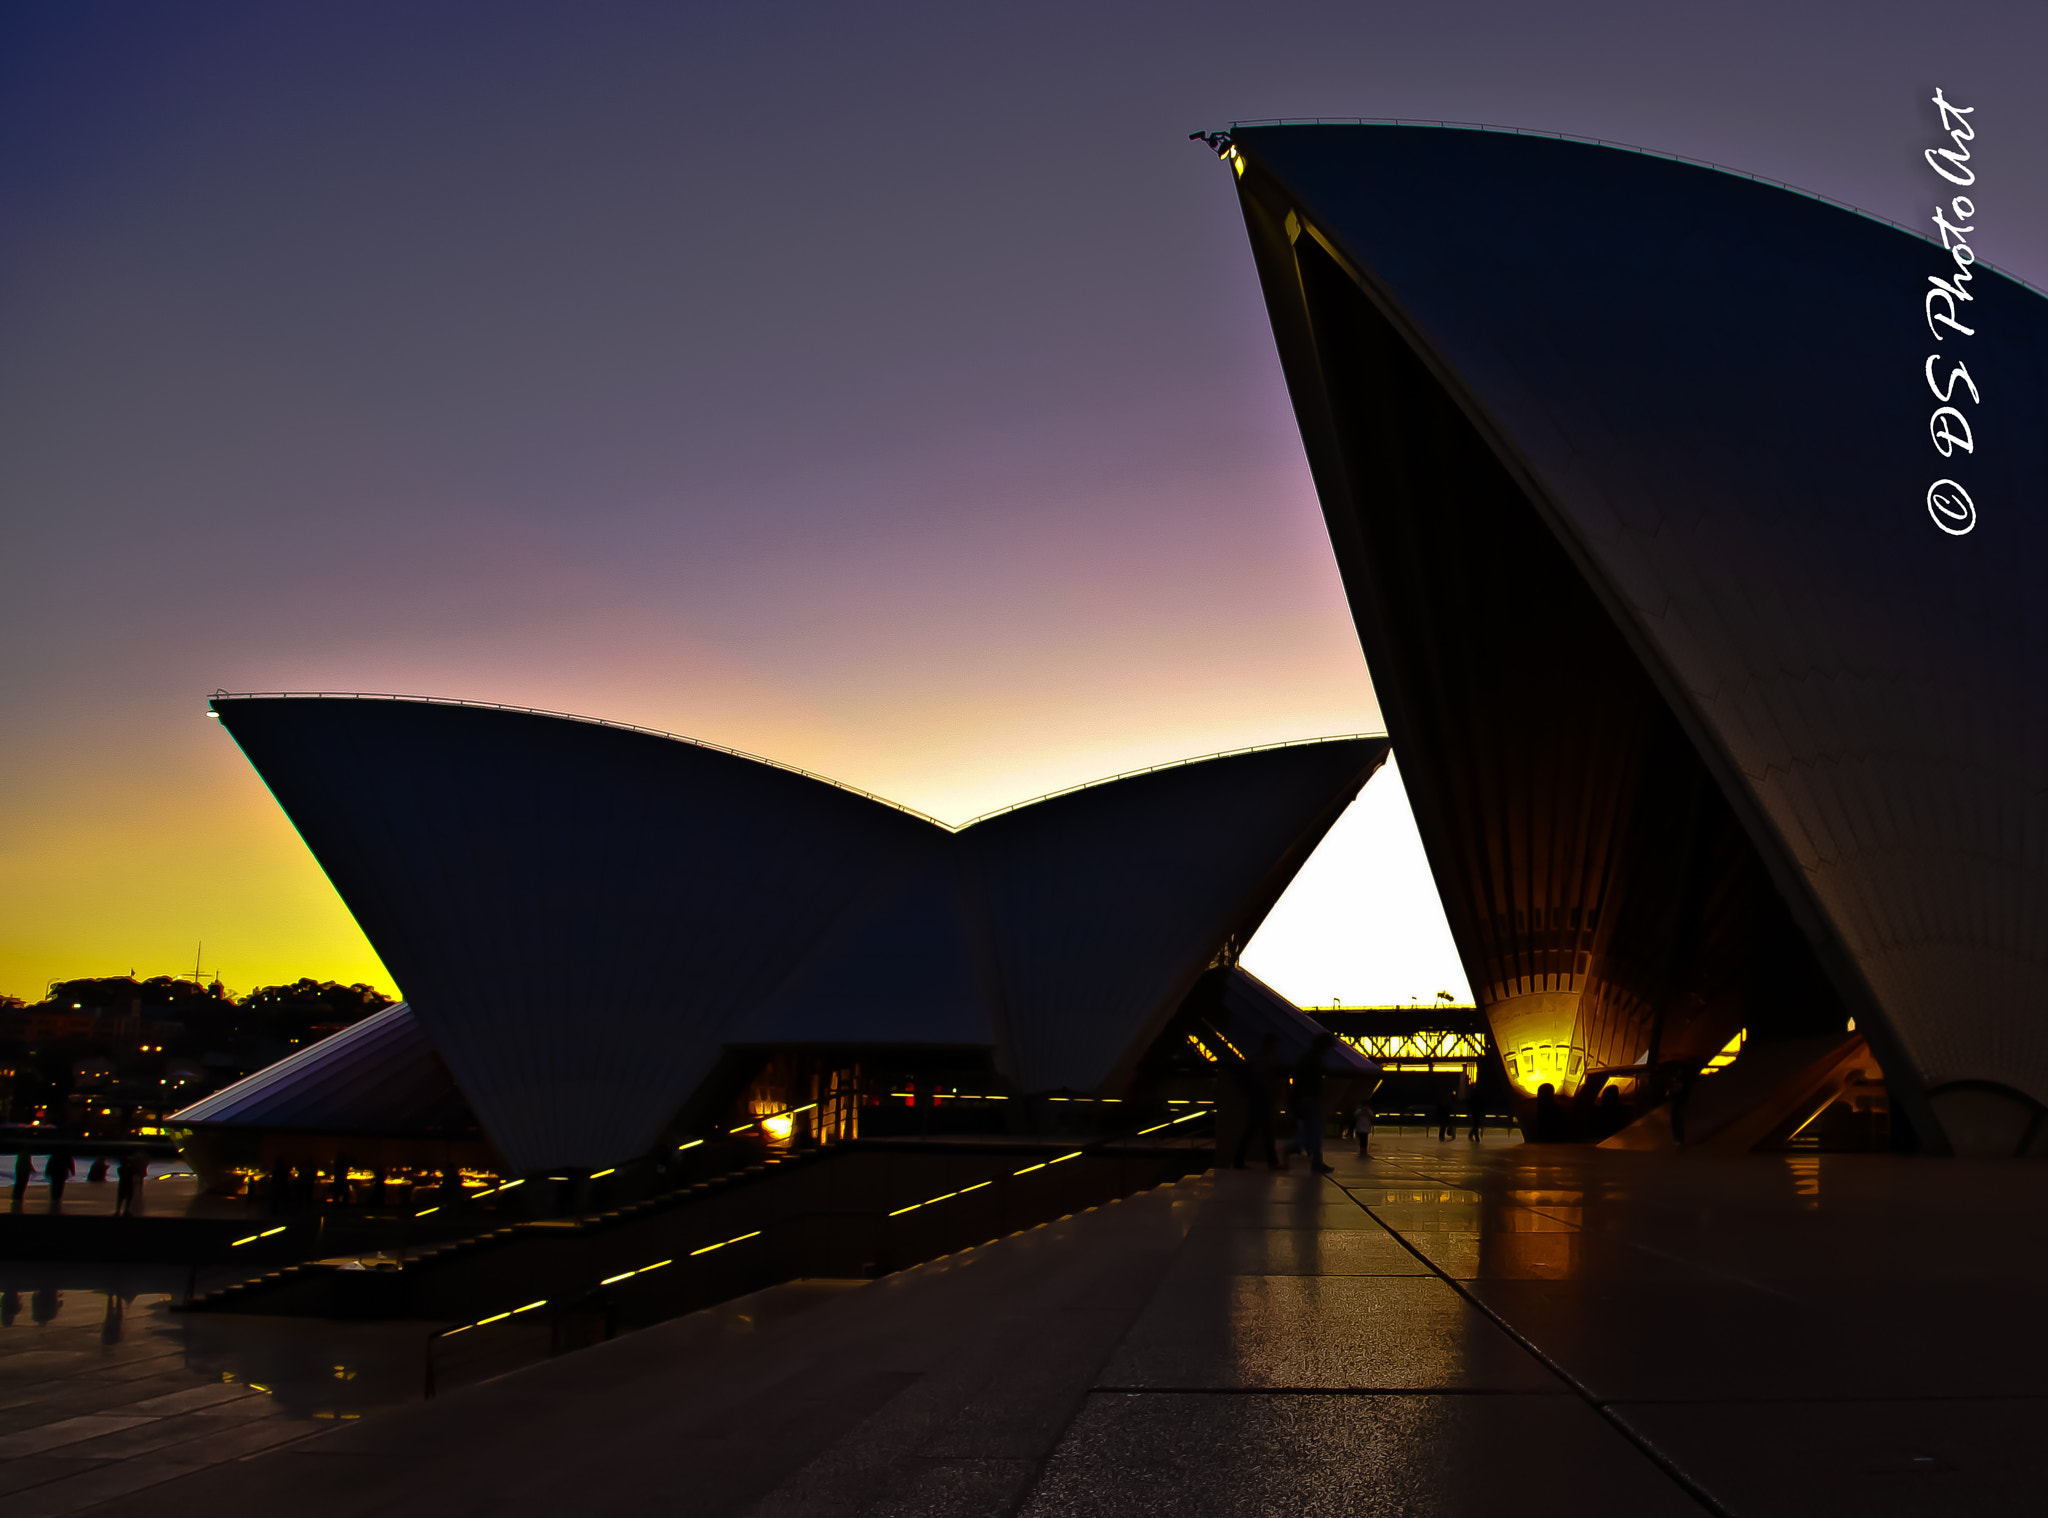 Photograph Guillaume at Bennelong, Sydney Opera House by Deepak Sharma on 500px